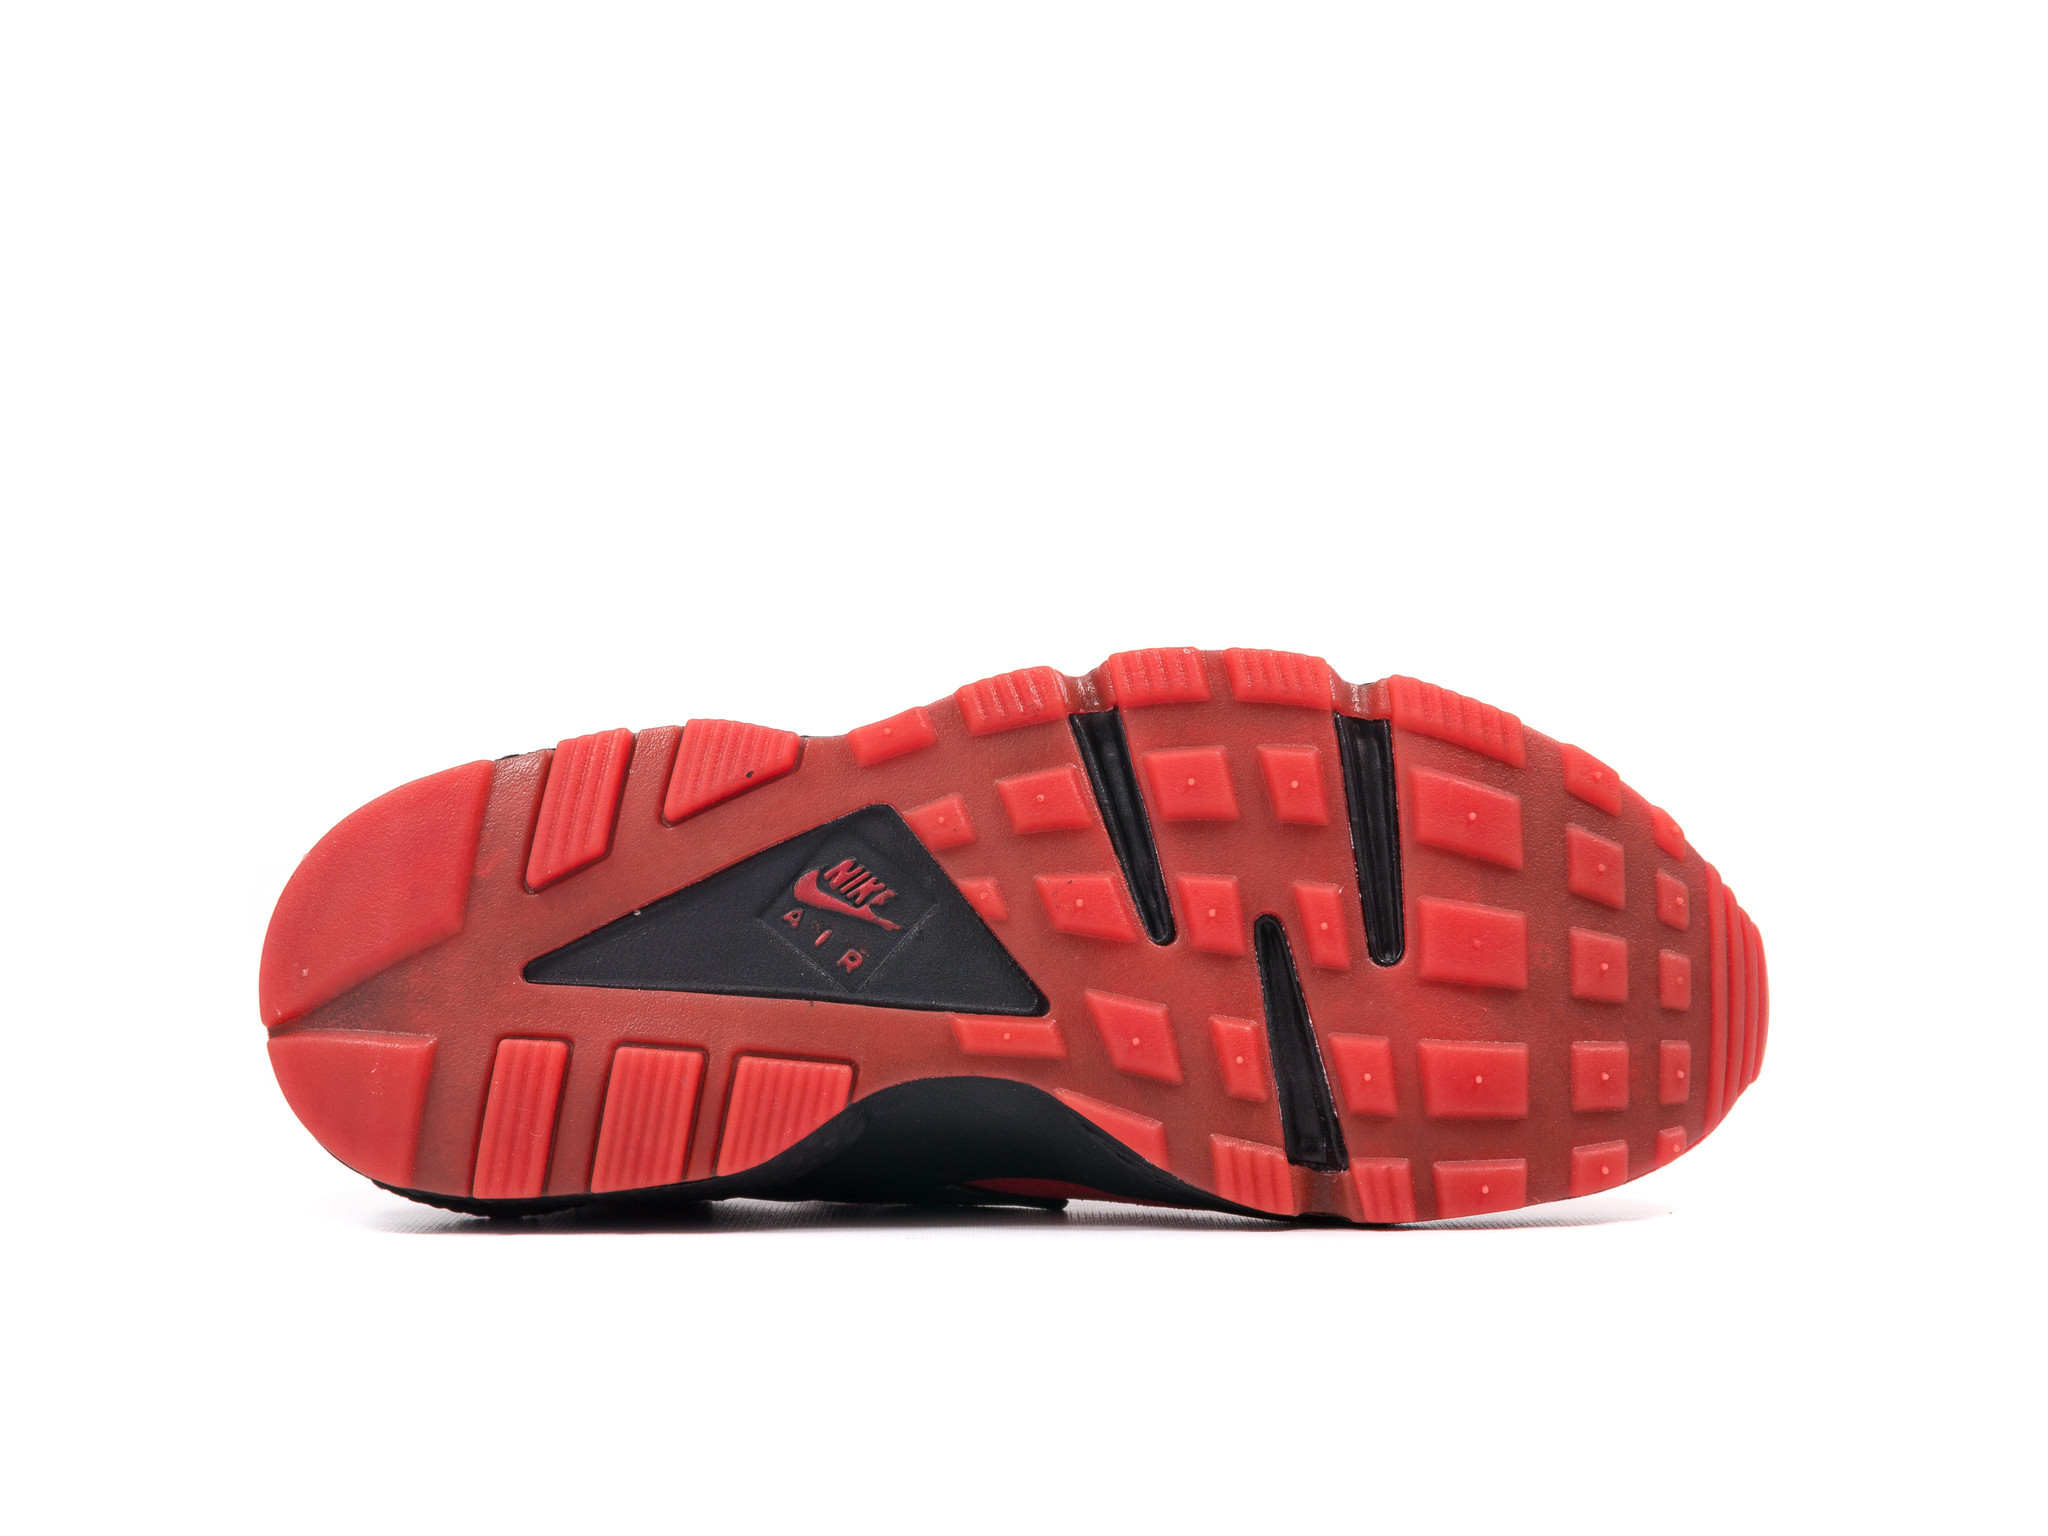 competitive price 11cb9 4f2a2 ... Nike Air Huarache QS University Red Black - Release Info 3 ...